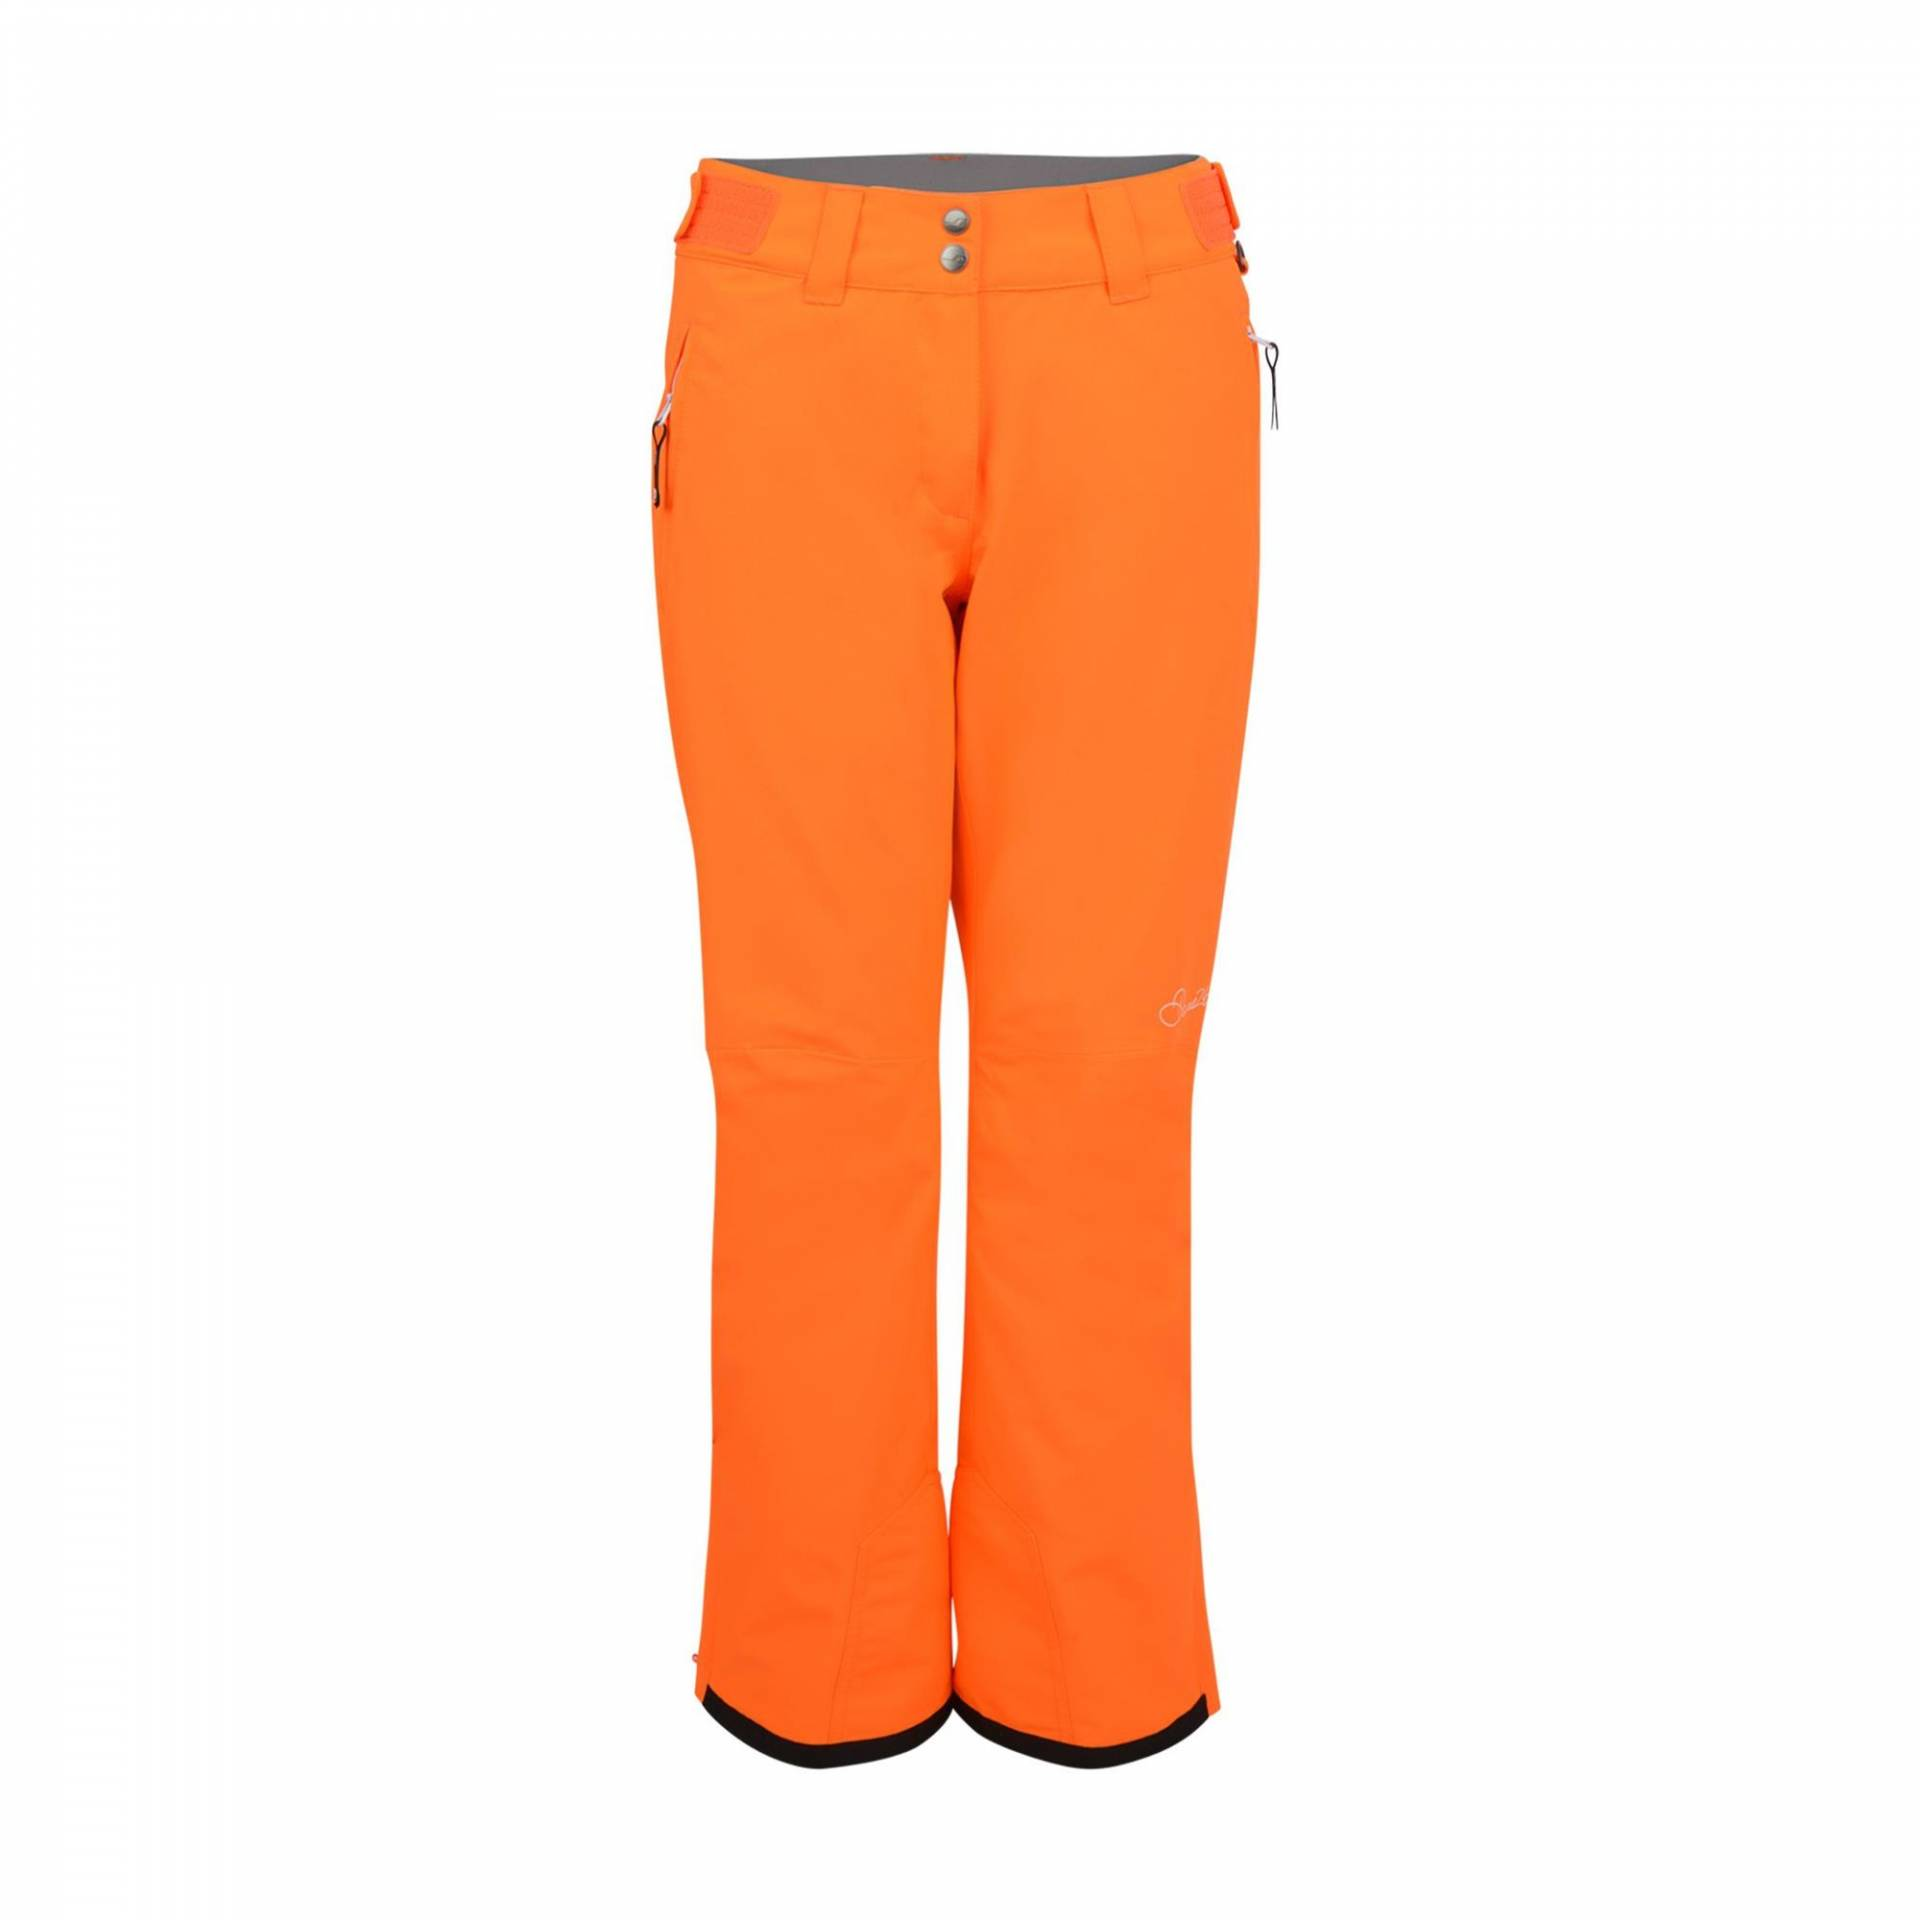 dare2b Stand For II Pant Damen Skihose orange Gr. 34 Damen von Dare2b